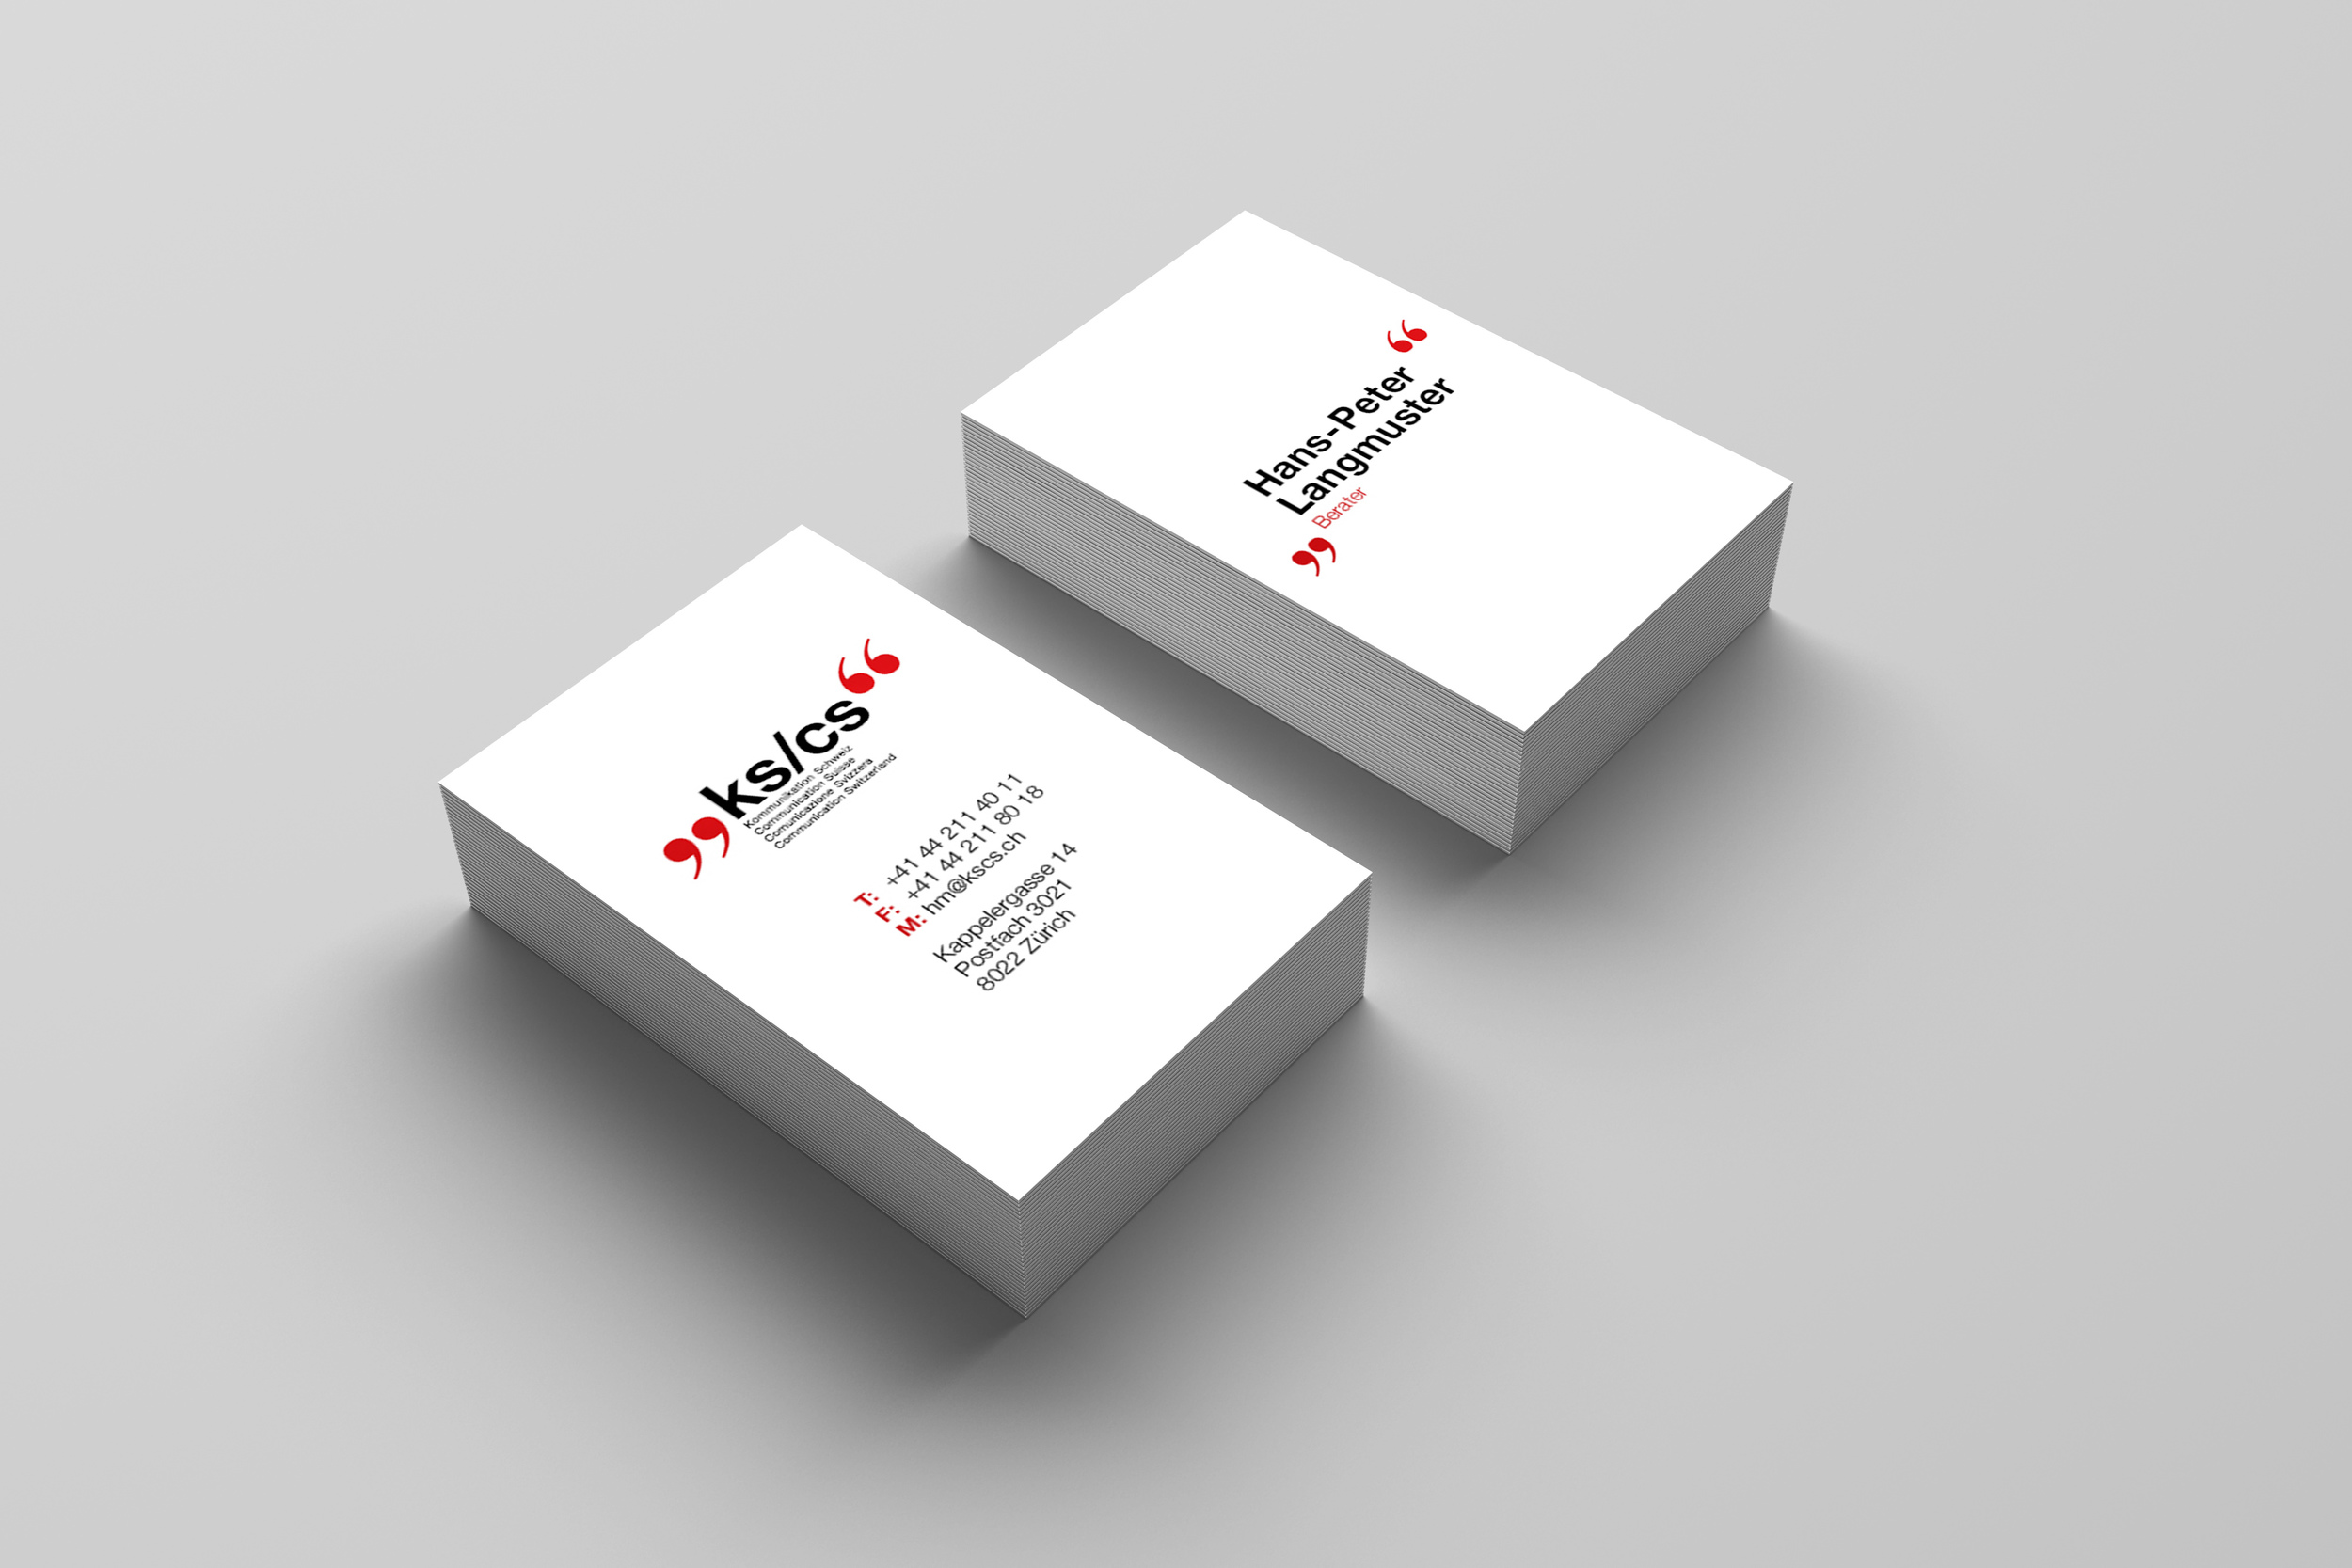 business card mockup_2.jpg